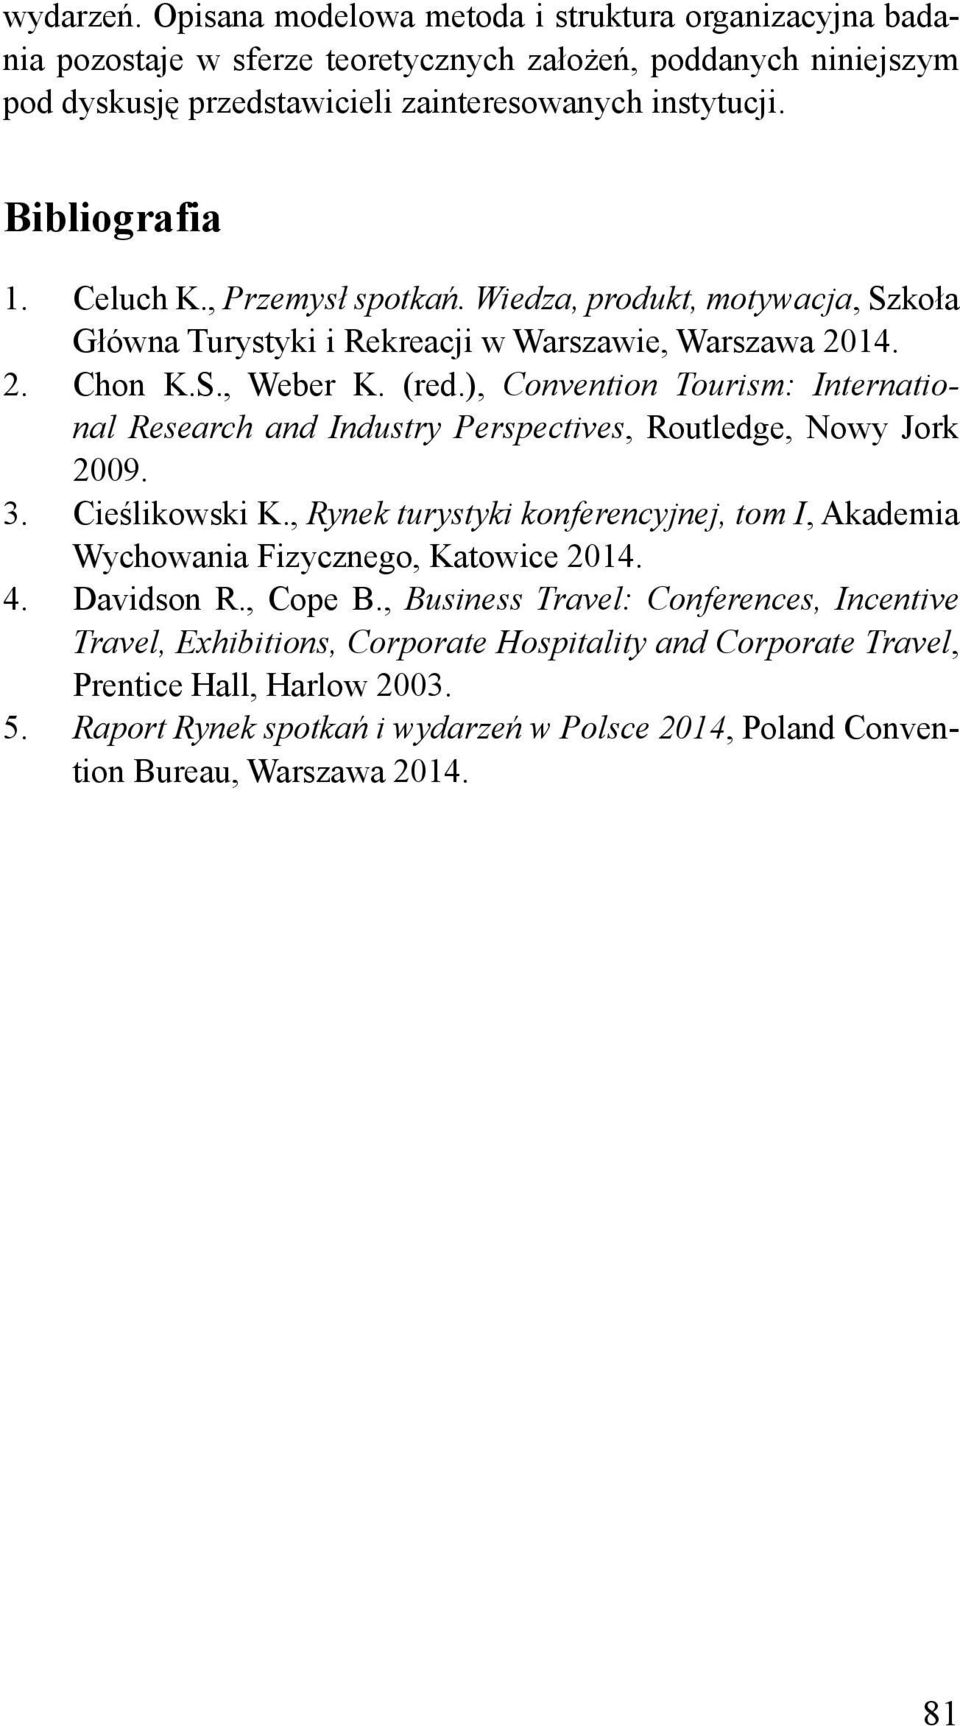 ), Convention Tourism: International Research and Industry Perspectives, Routledge, Nowy Jork 2009. 3. Cieślikowski K.